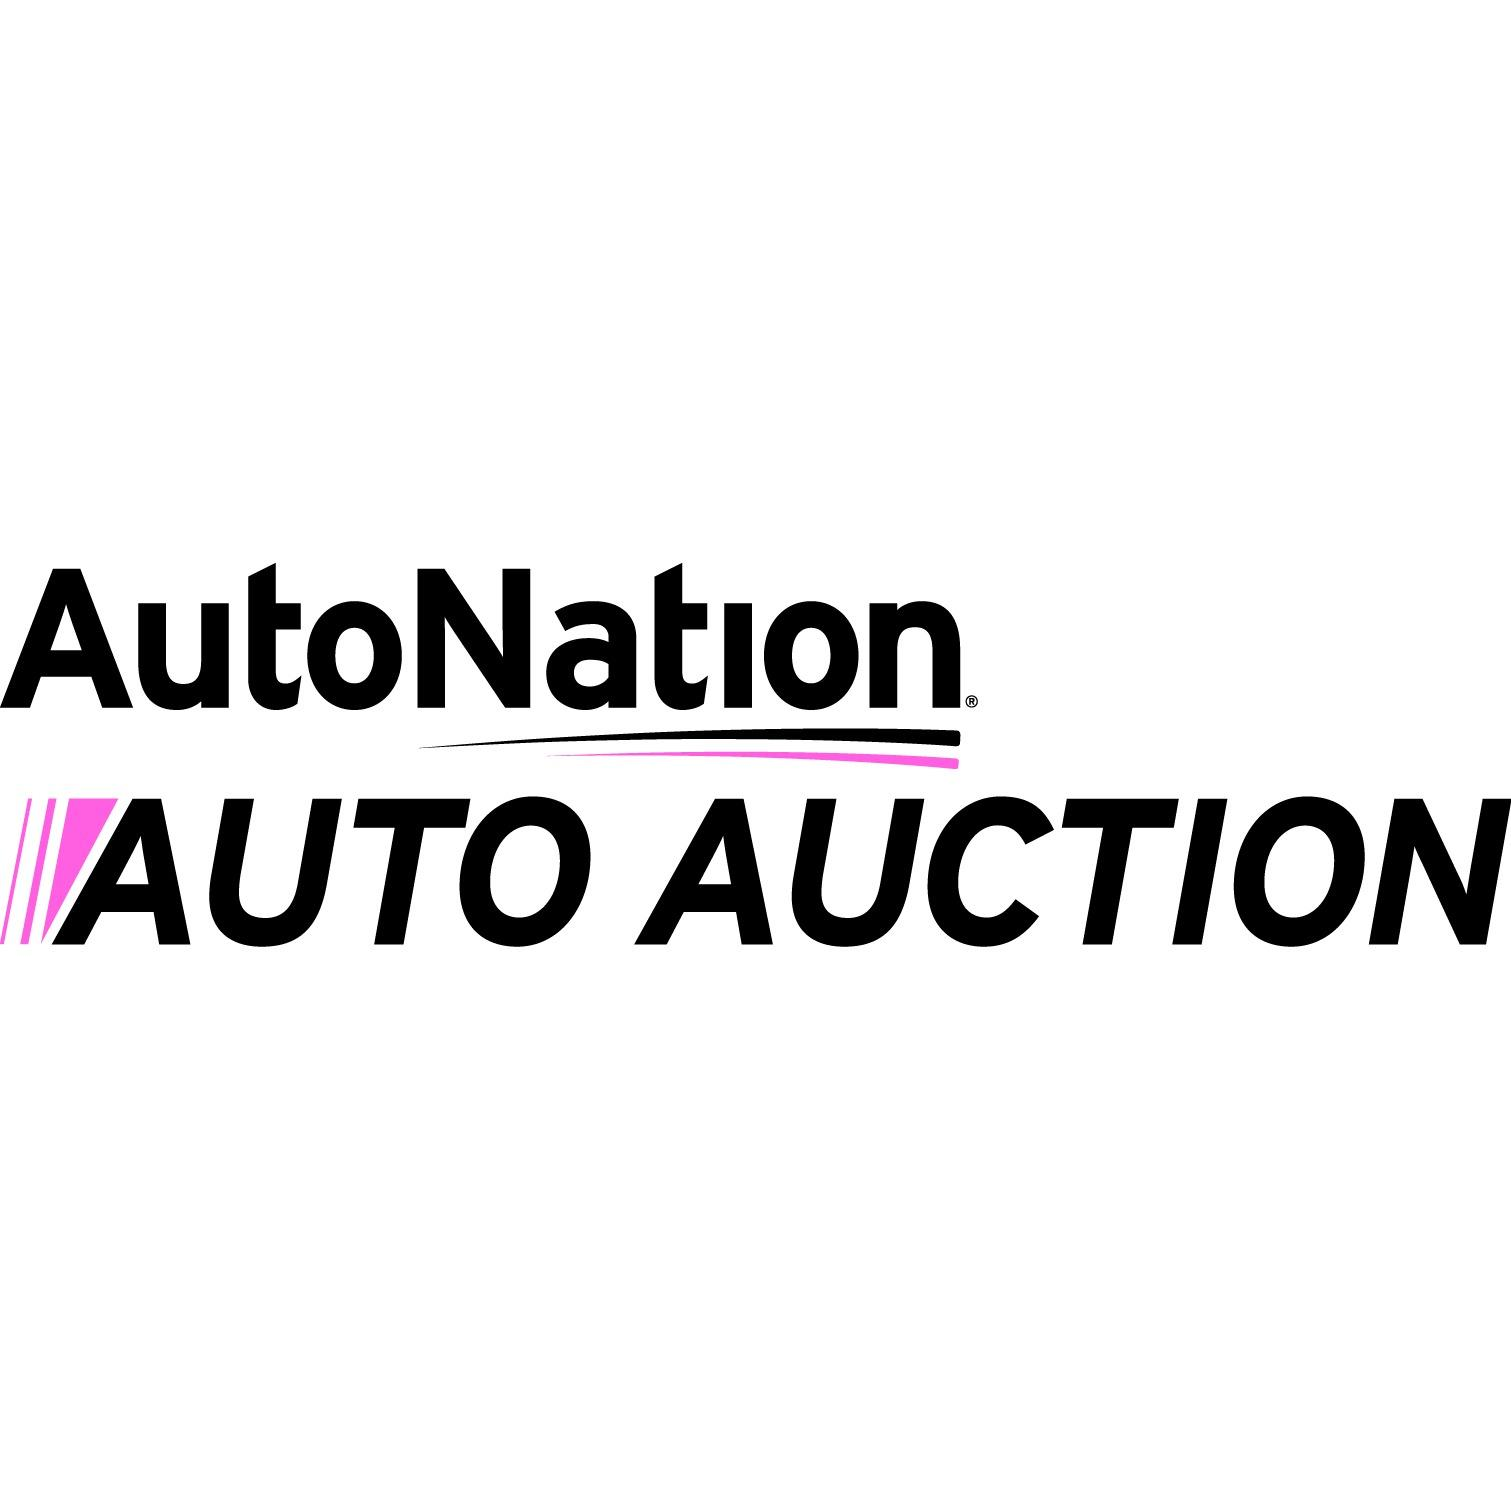 autonation mis About autonation, inc: autonation is america's largest automotive retailer, currently owning and operating 368 new vehicle franchises from coast to coast autonation sold its 10 millionth vehicle in 2015, the first automotive retailer to reach this milestone.